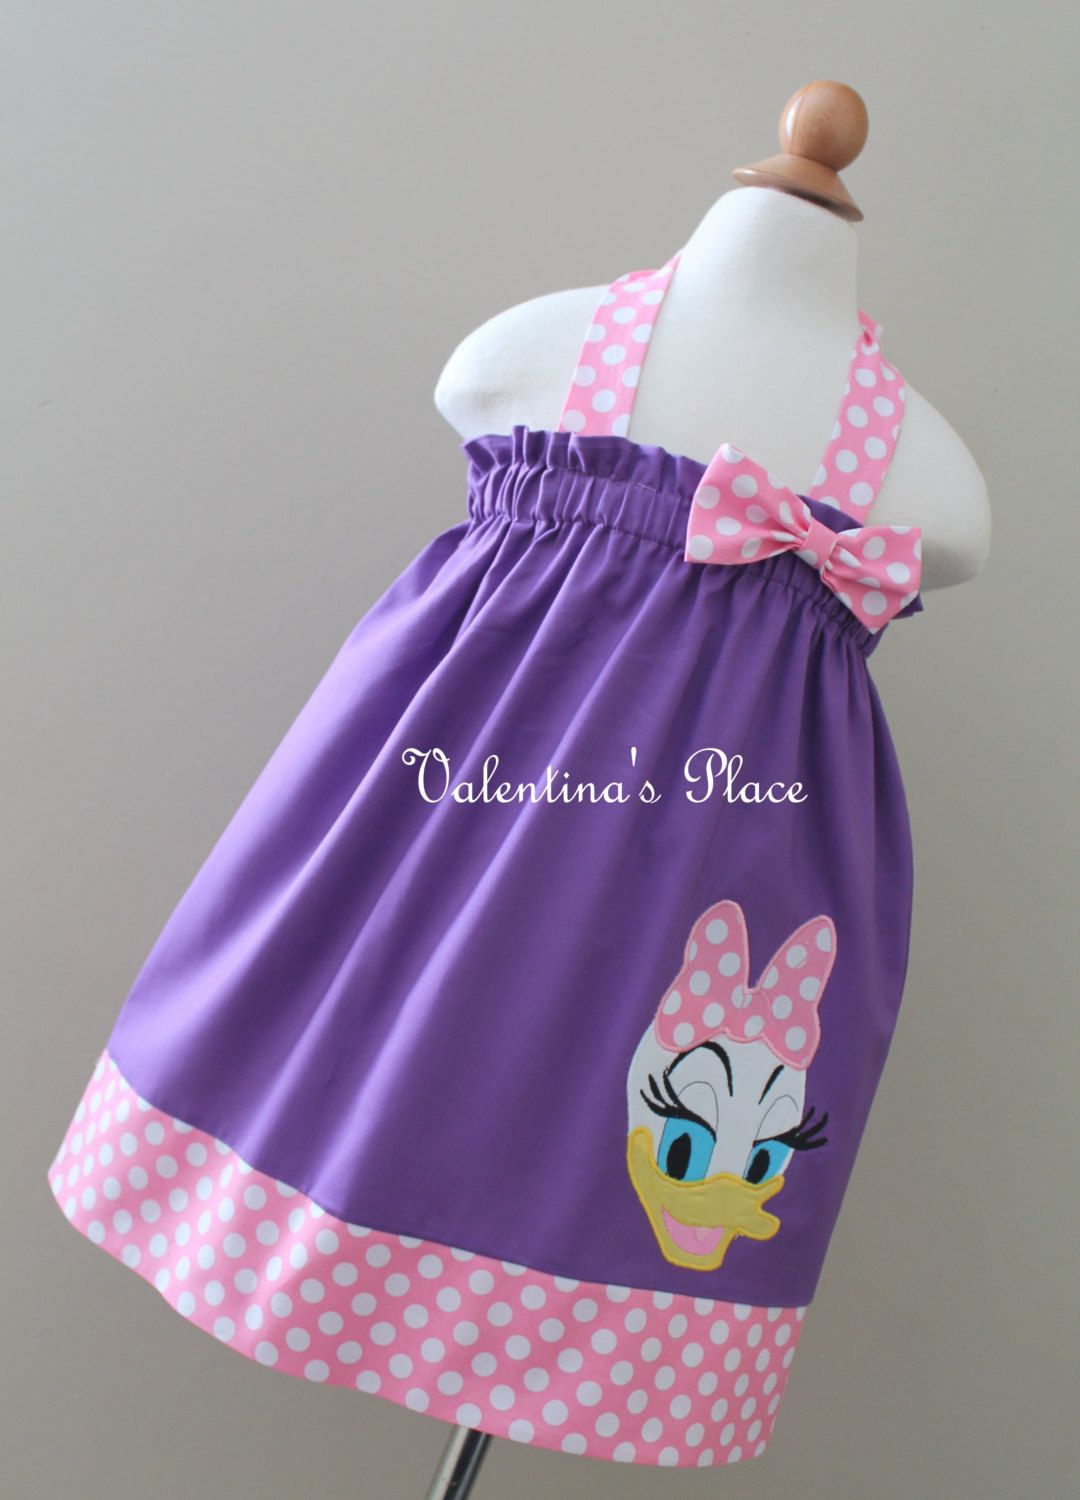 New and Unique Daisy Duck pillowcase dress or halter style dress ...